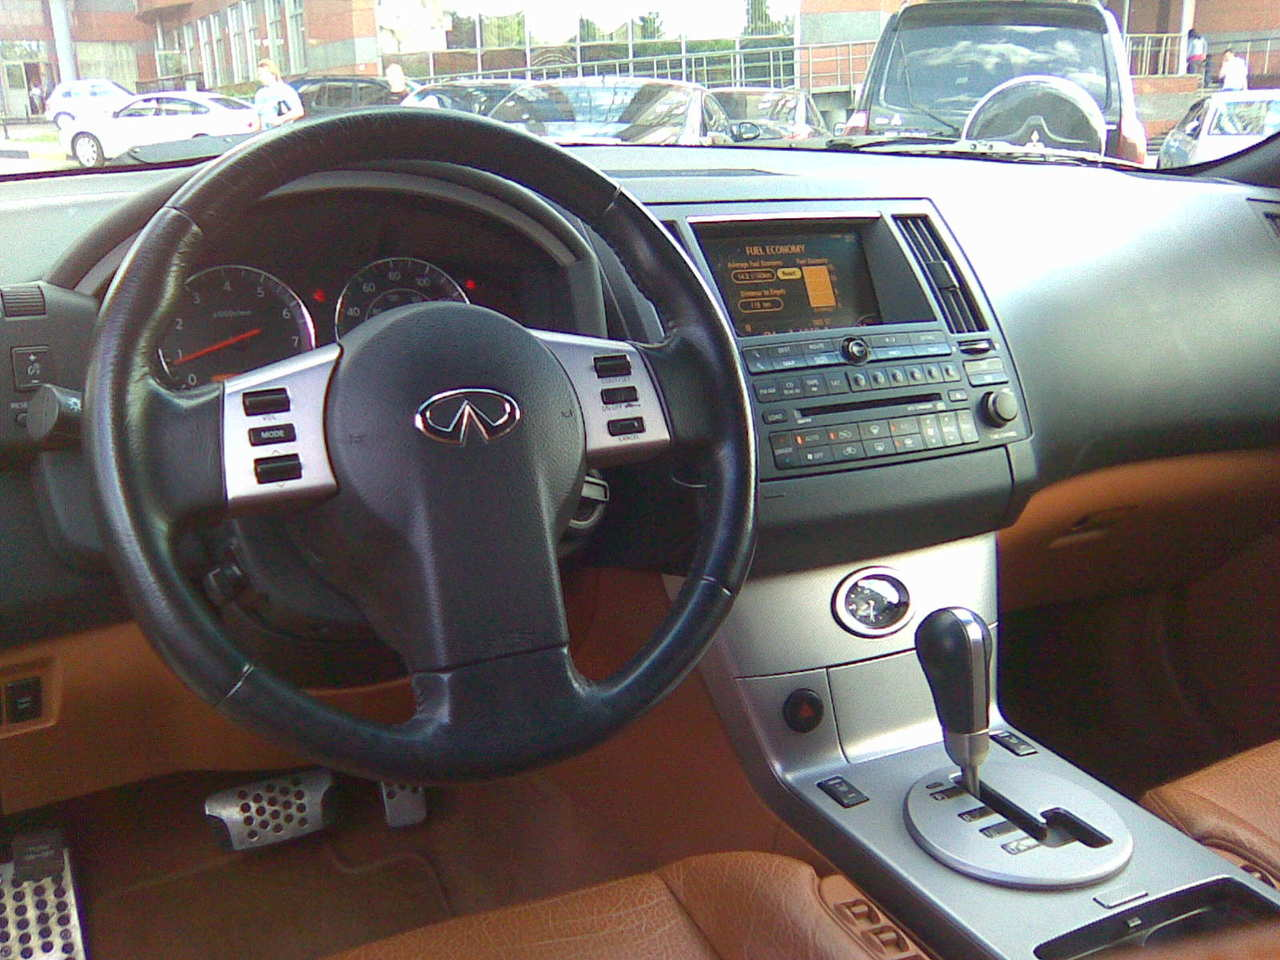 2005 infiniti fx45 pictures 4500cc gasoline automatic for sale photo 3 enlarge photo 1280x960 2005 infiniti fx45 pictures vanachro Gallery